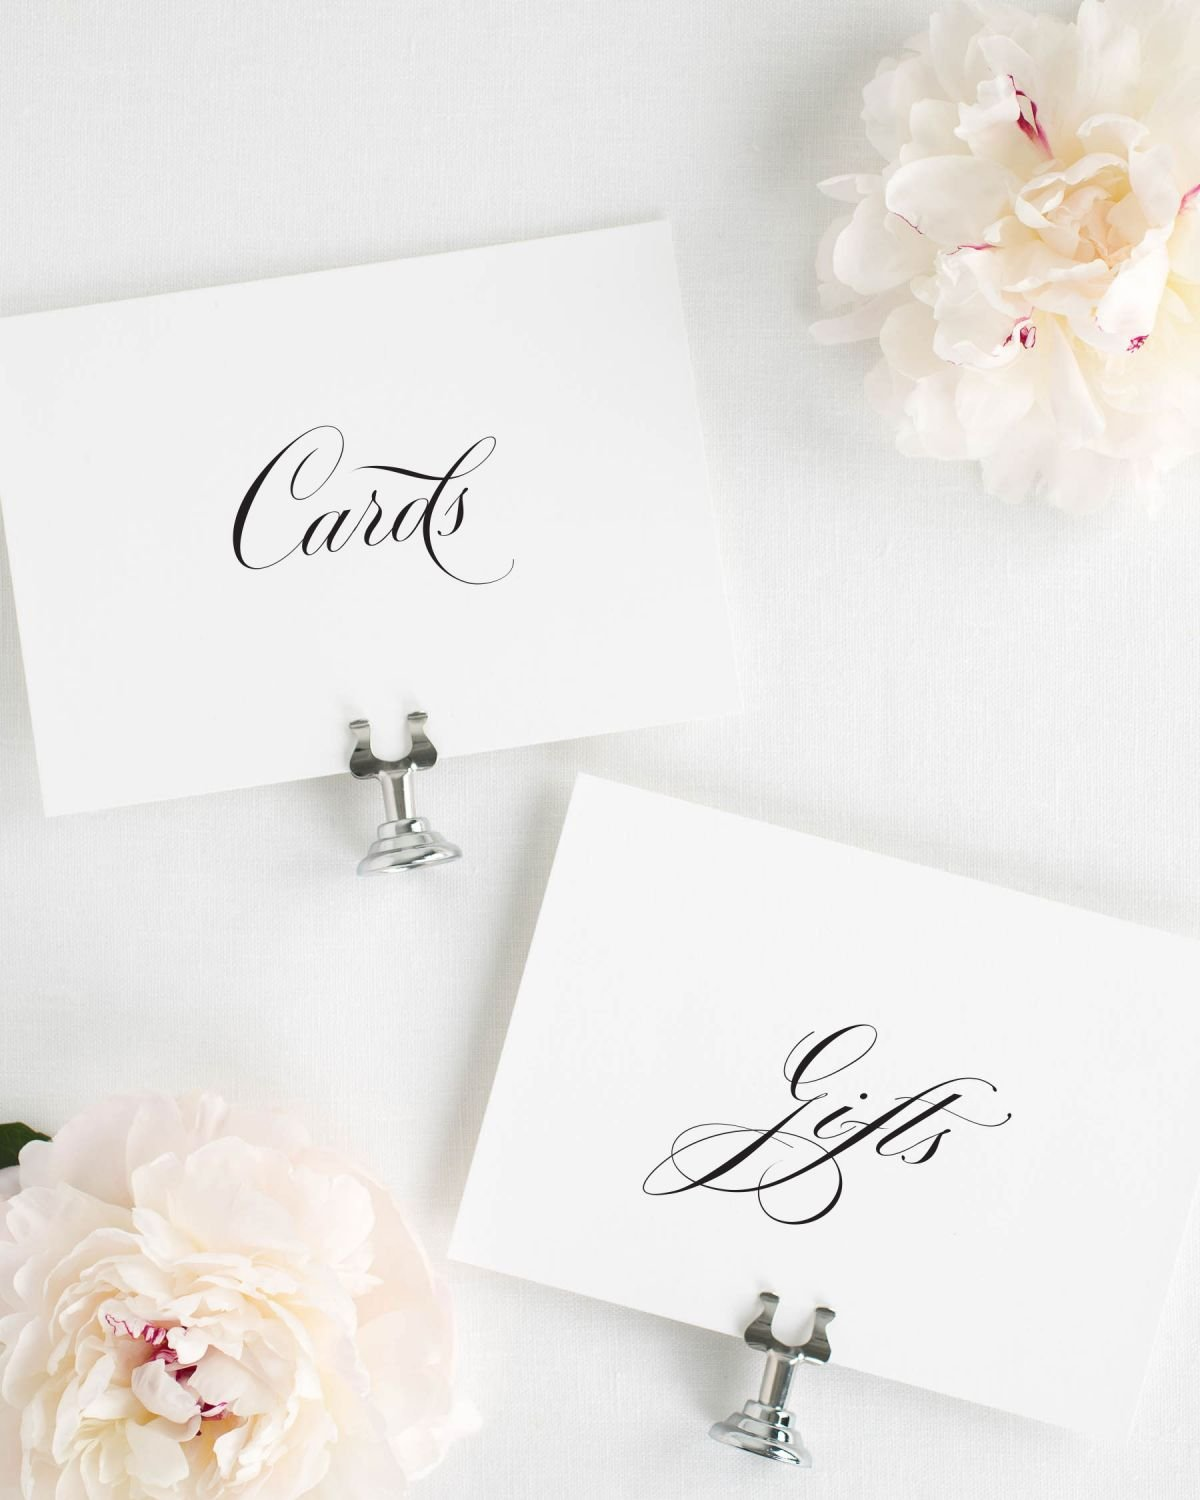 Script Gifts and Cards Signs for a Wedding